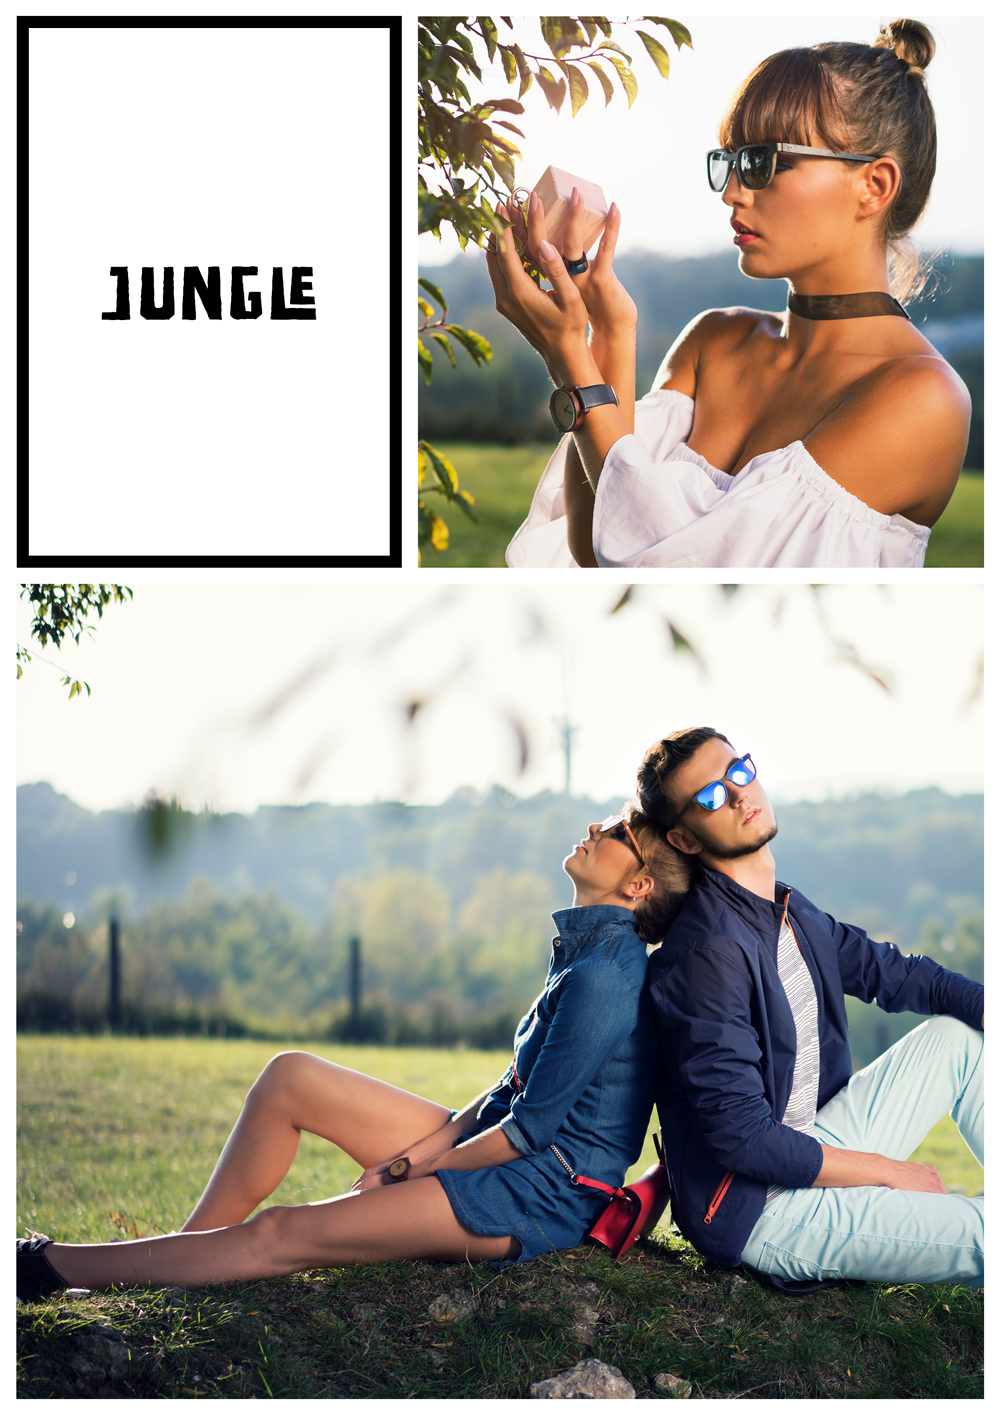 plantwear_fb_lookbook_srodek1_jungle_201610